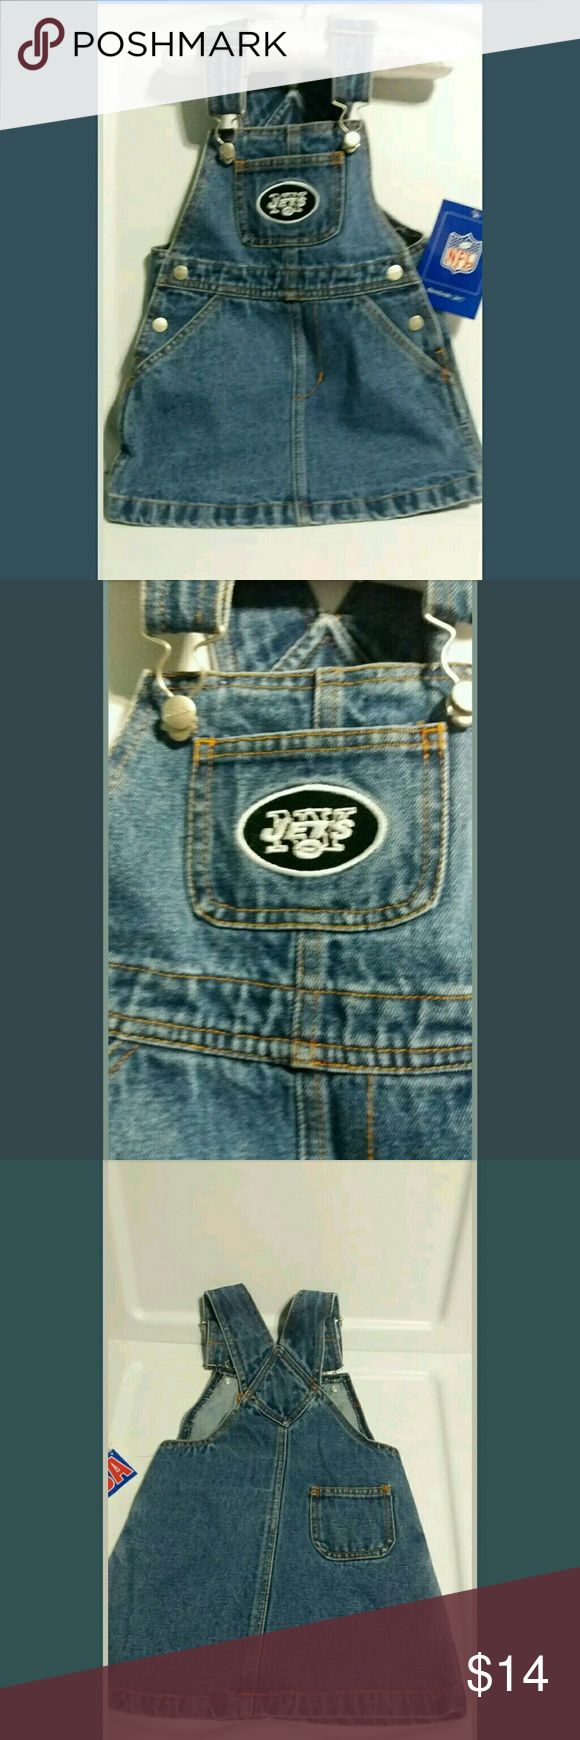 "Reebok NY Jets Girl's Denim Overall Dress For our littlest fans, Reebok NY Jets Girl's Denim Overall Dress NFL Brand (2T)   Adjustable Straps for growth. Silver tone Reebok hardware. 2 side pockets 1 back pocket & 1 chest pocket with team logo.   Length: 14.5"" from chest to hem.   Thanks for visiting The Closet Shopper!!! NFL Dresses Casual"